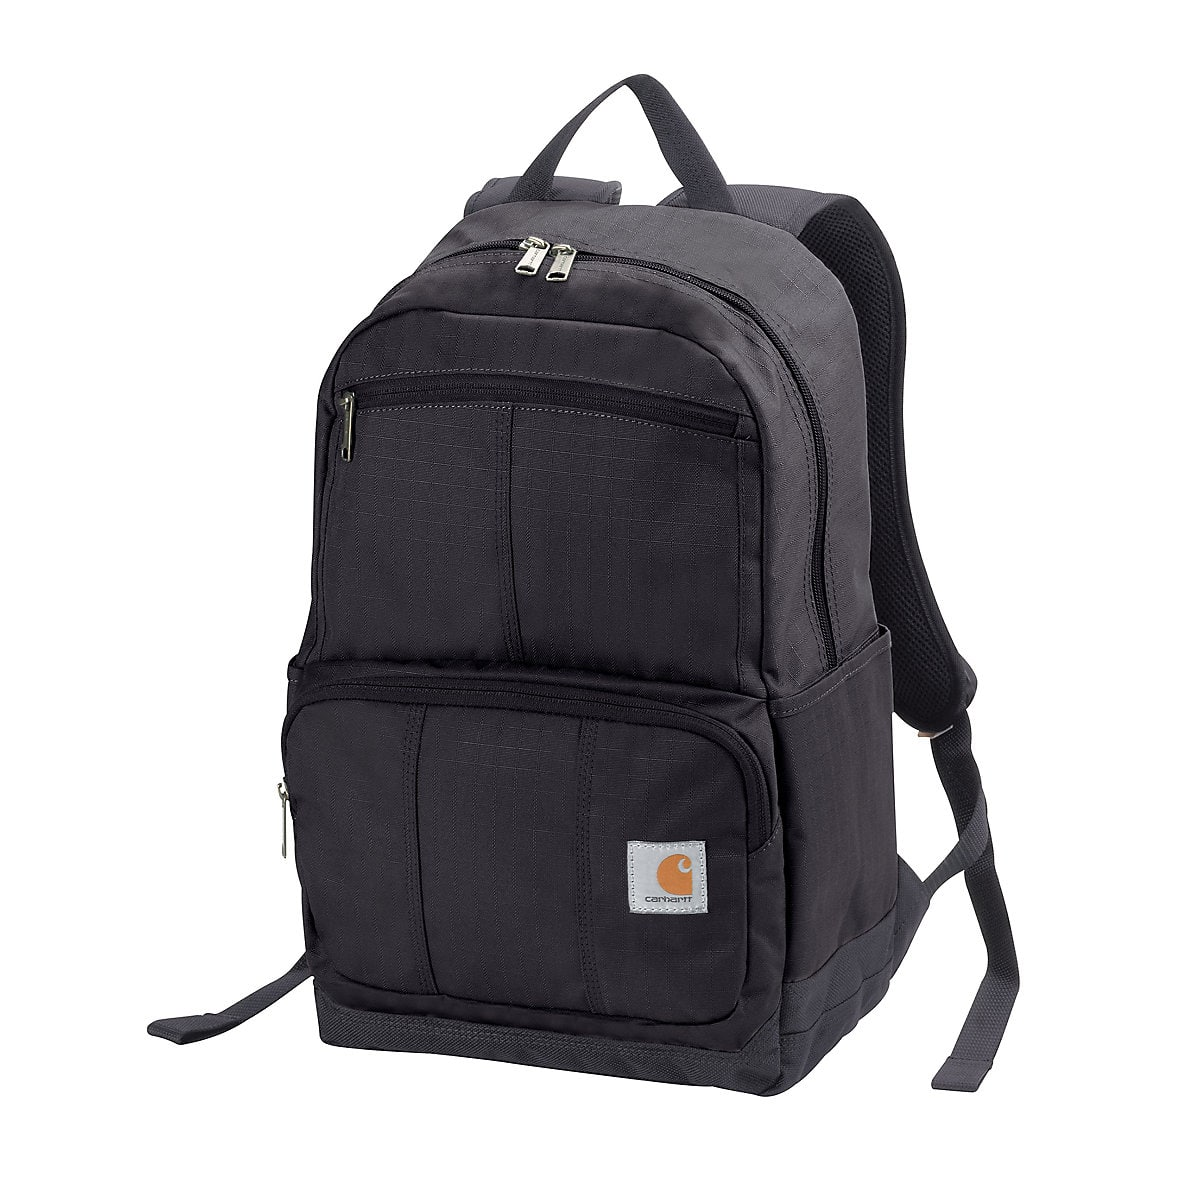 Unisex D89 Backpack 110313B